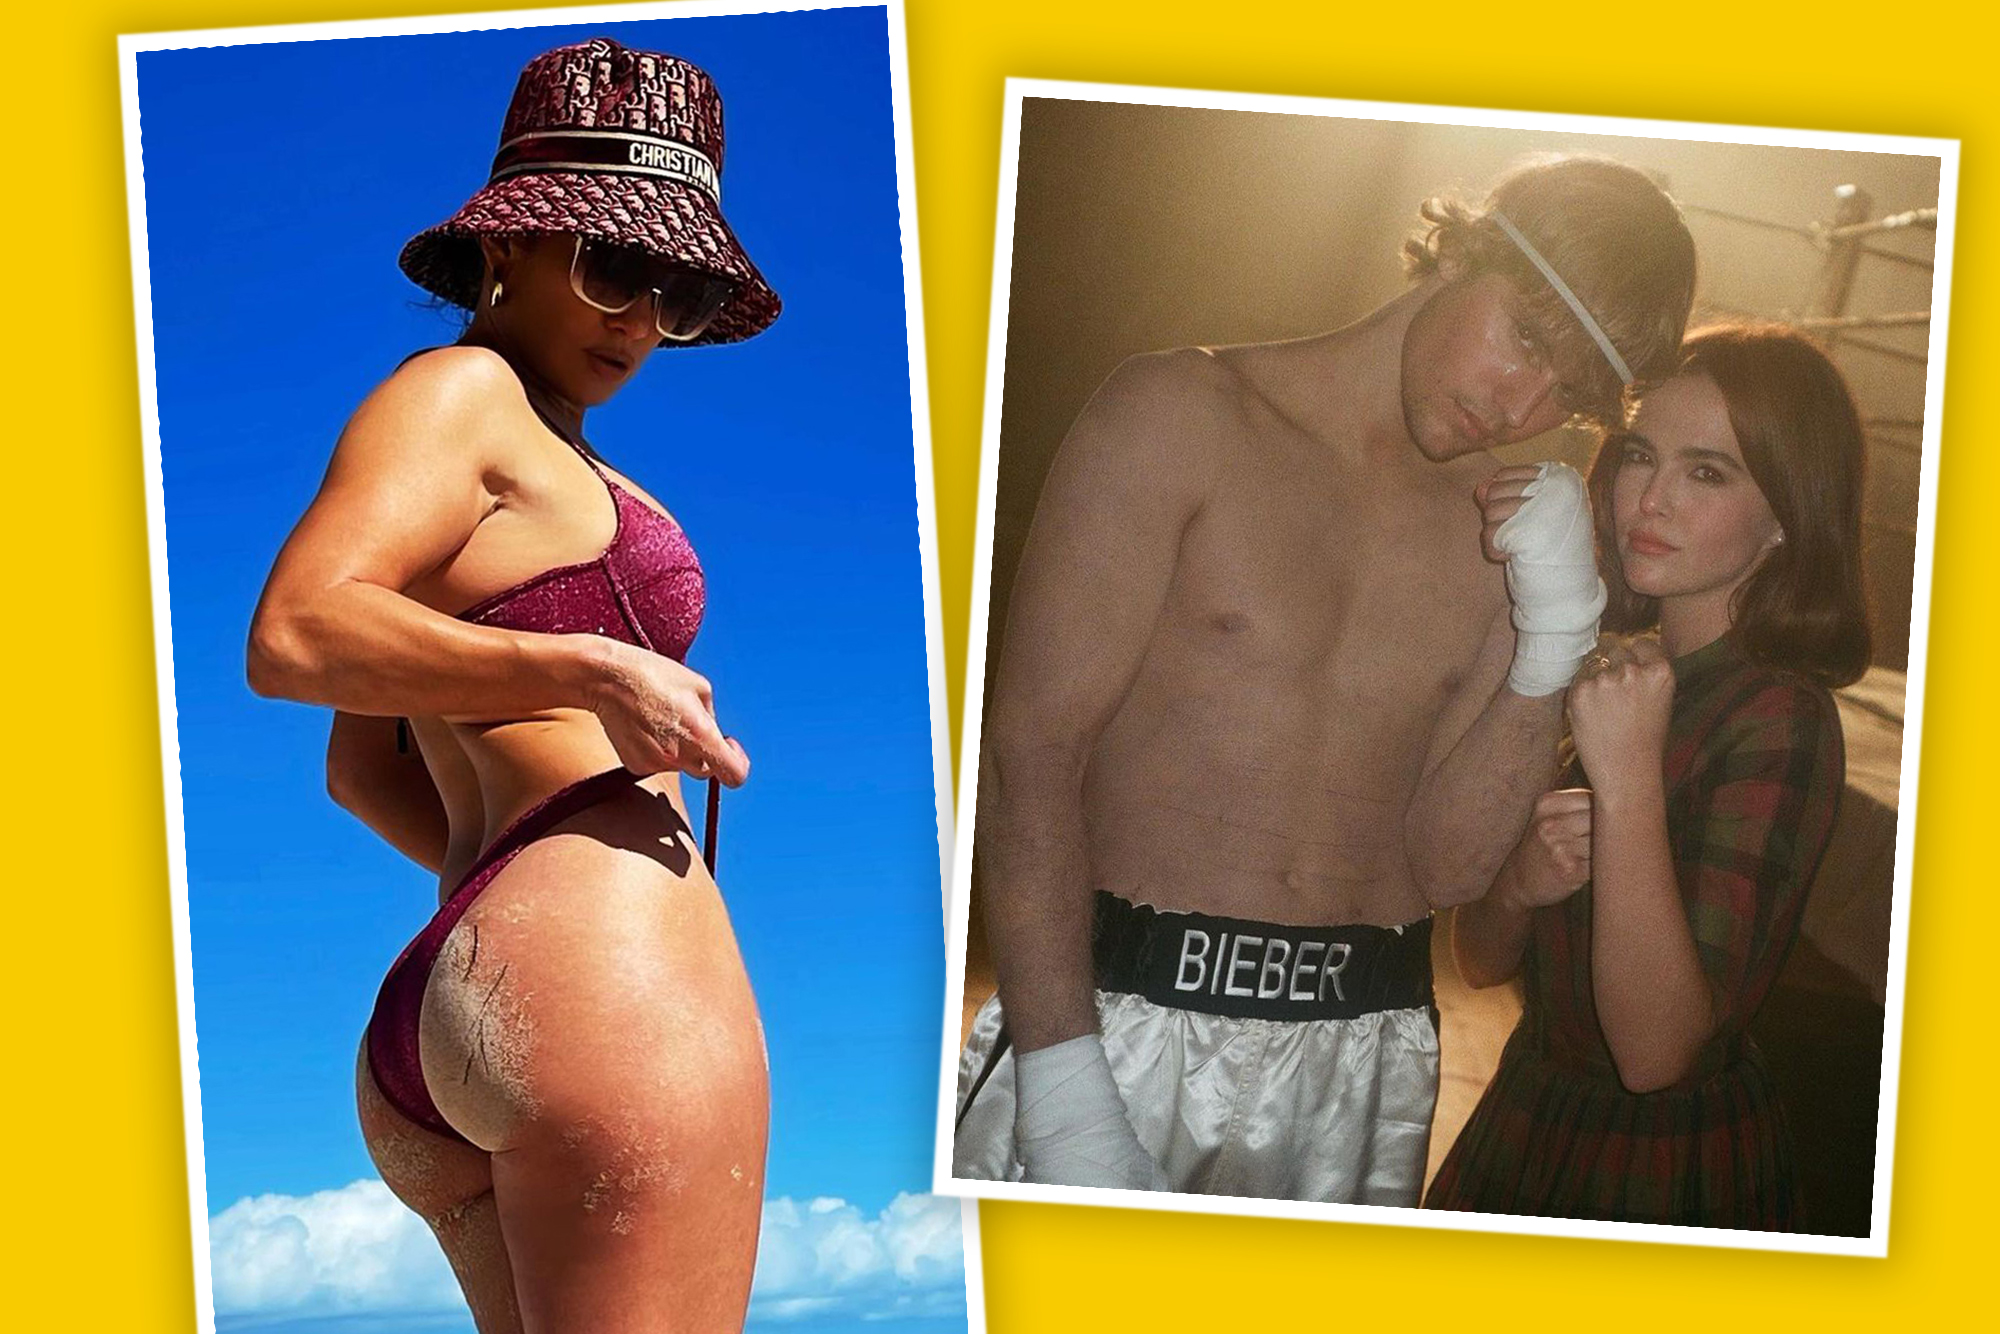 Best star snaps of the week: Ageless J.Lo and a tattoo-less Bieber